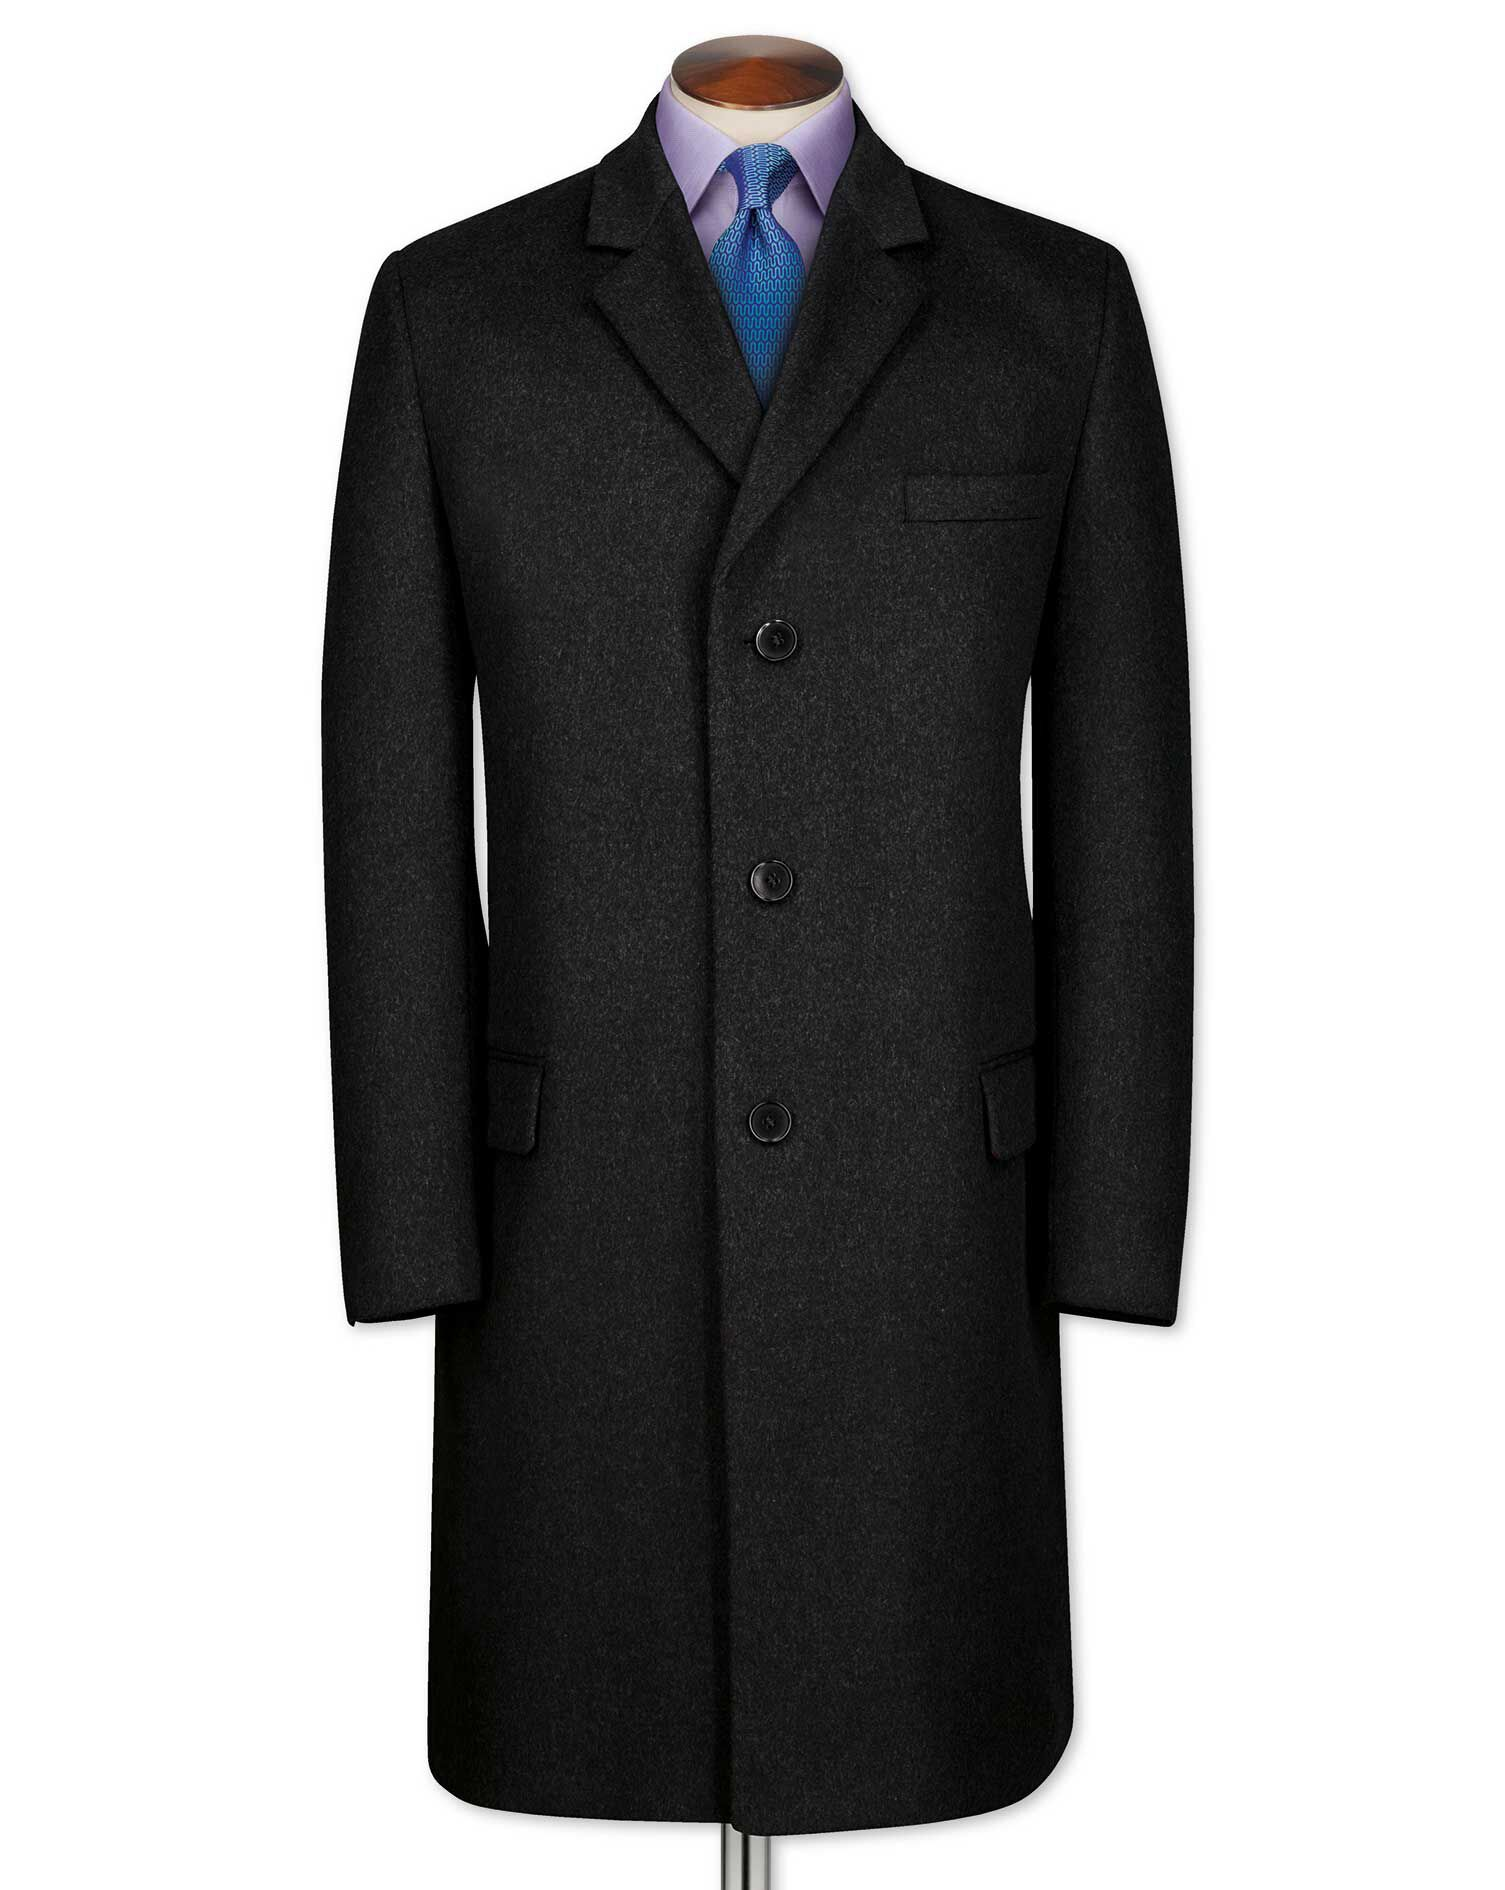 Slim Fit Charcoal Wool and Cashmere Overcoat Size 48 by Charles Tyrwhitt